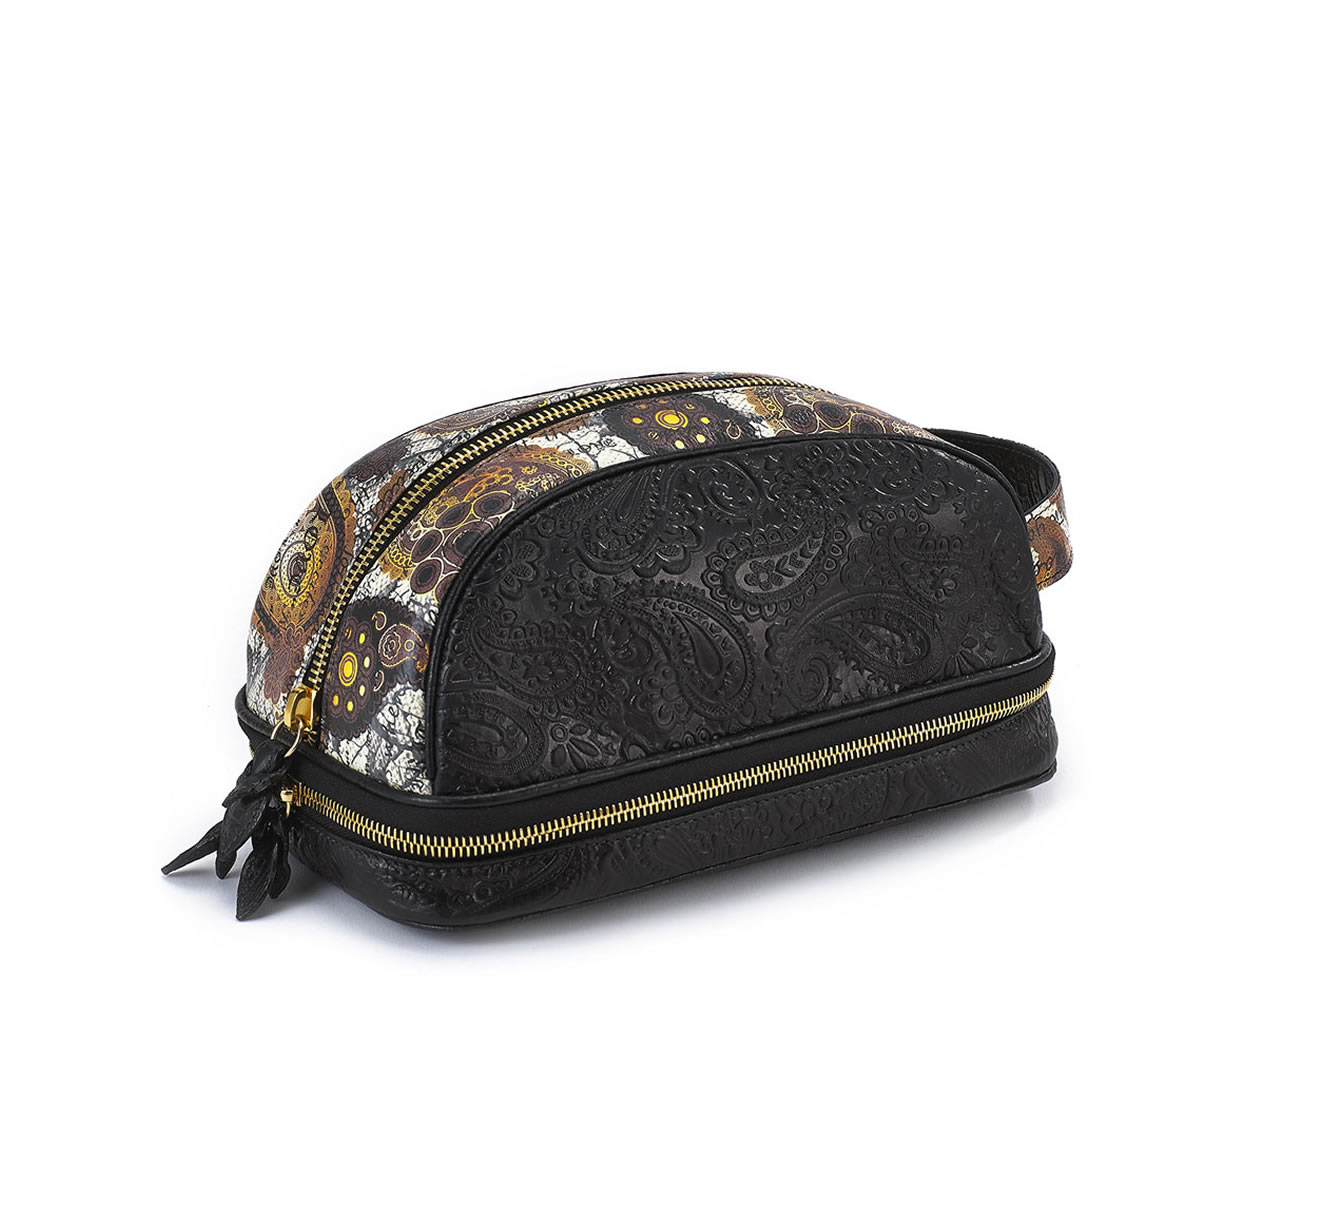 DOPP KIT BLACK EMBOSSED GOLD RUST PAISLEY bag